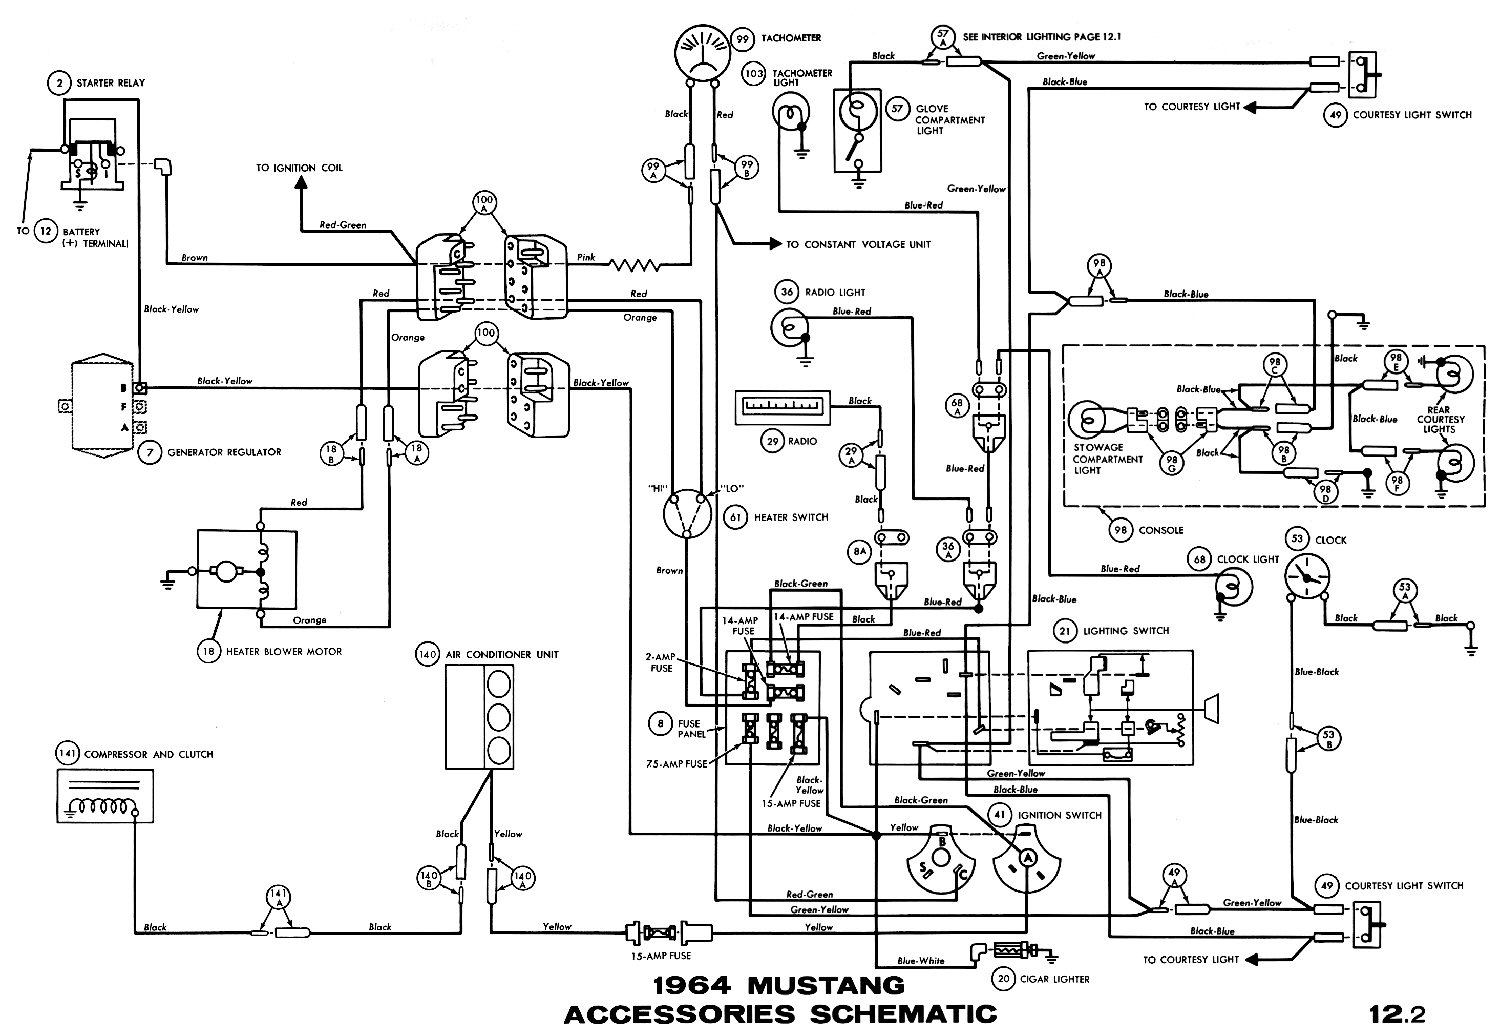 1964m 1964 mustang wiring diagrams average joe restoration 65 mustang tail light wiring diagram at n-0.co